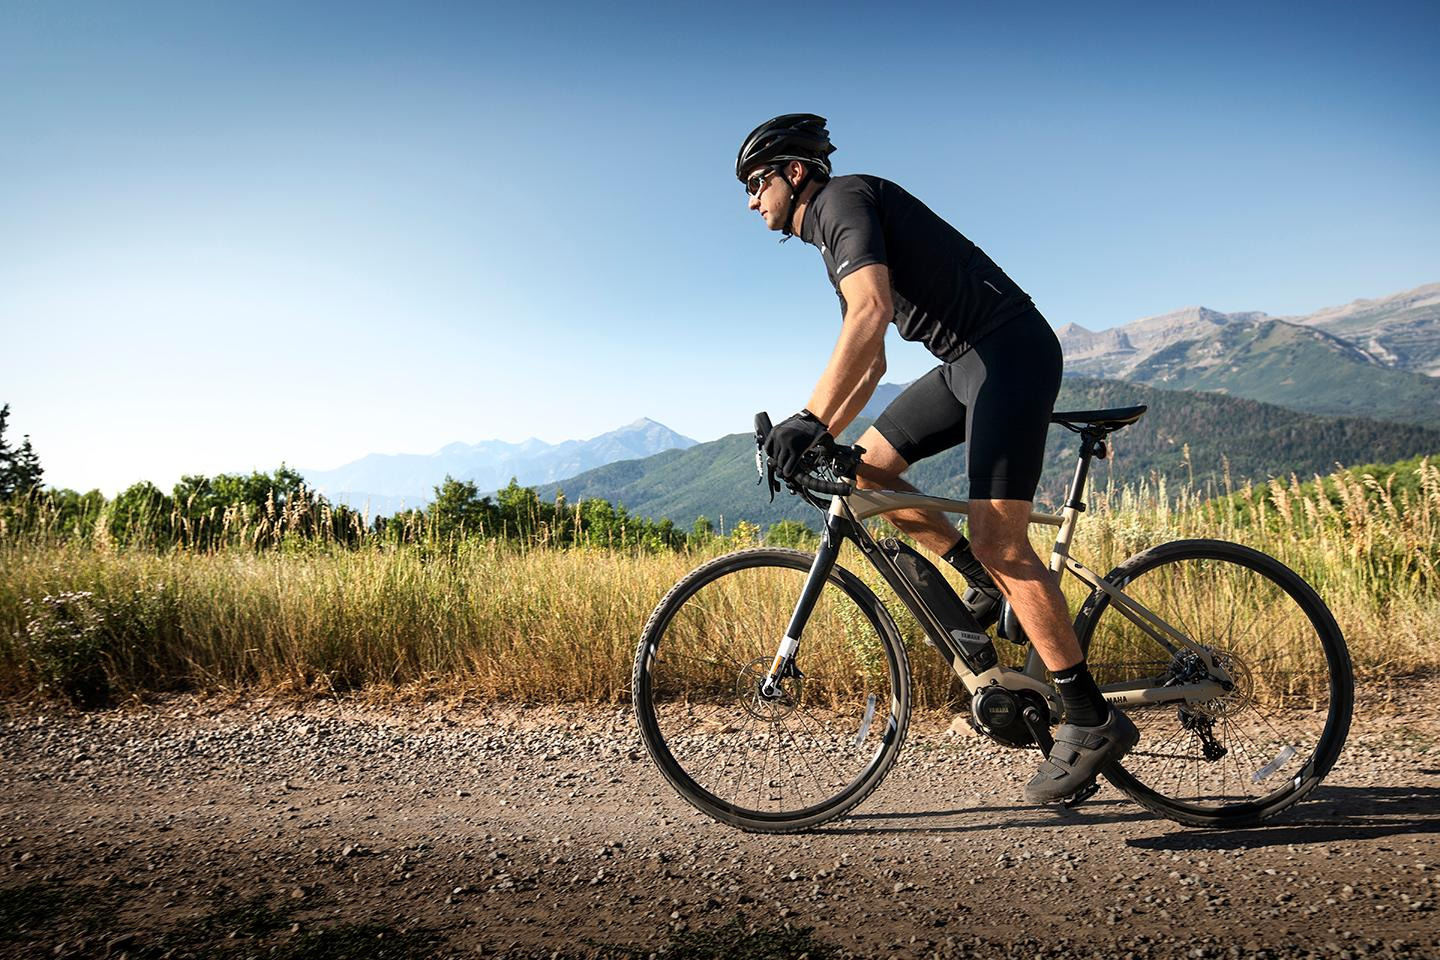 The Yamaha Wabash Adventure Gravel e-bike is built for rolling roads or dirt trails